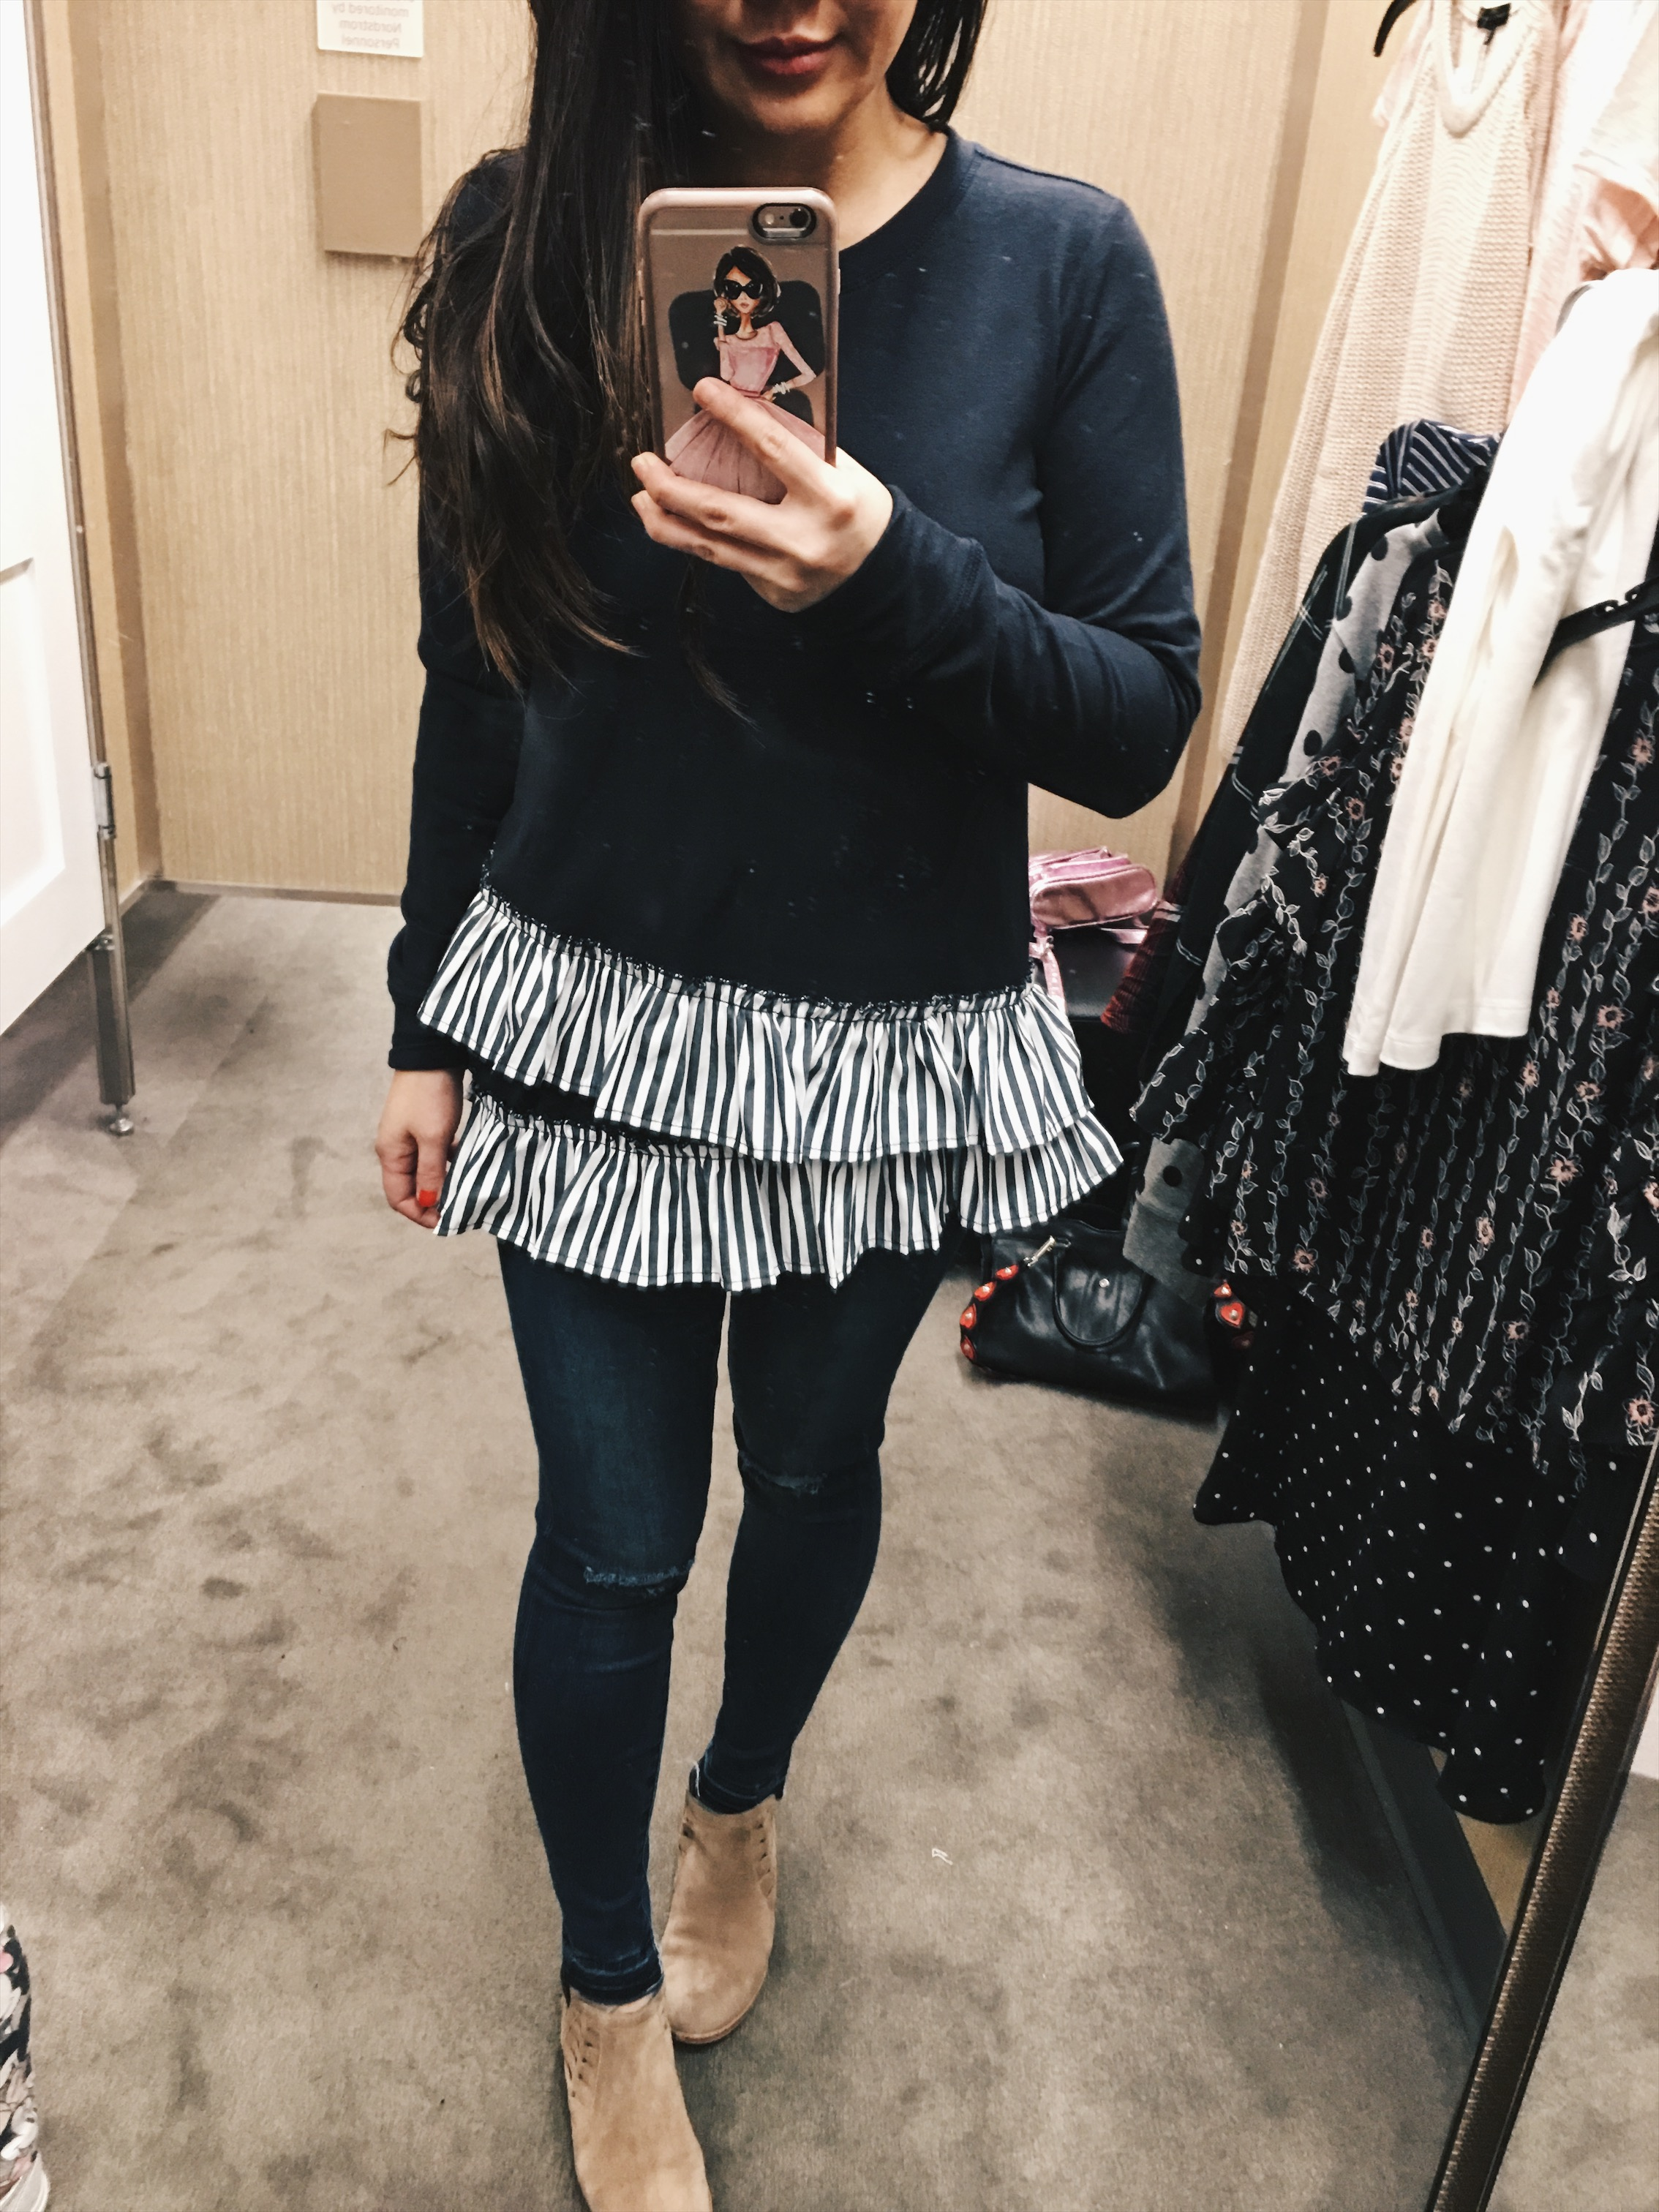 Nordstrom and J Crew Shopping Haul & Dressing Room Reviews